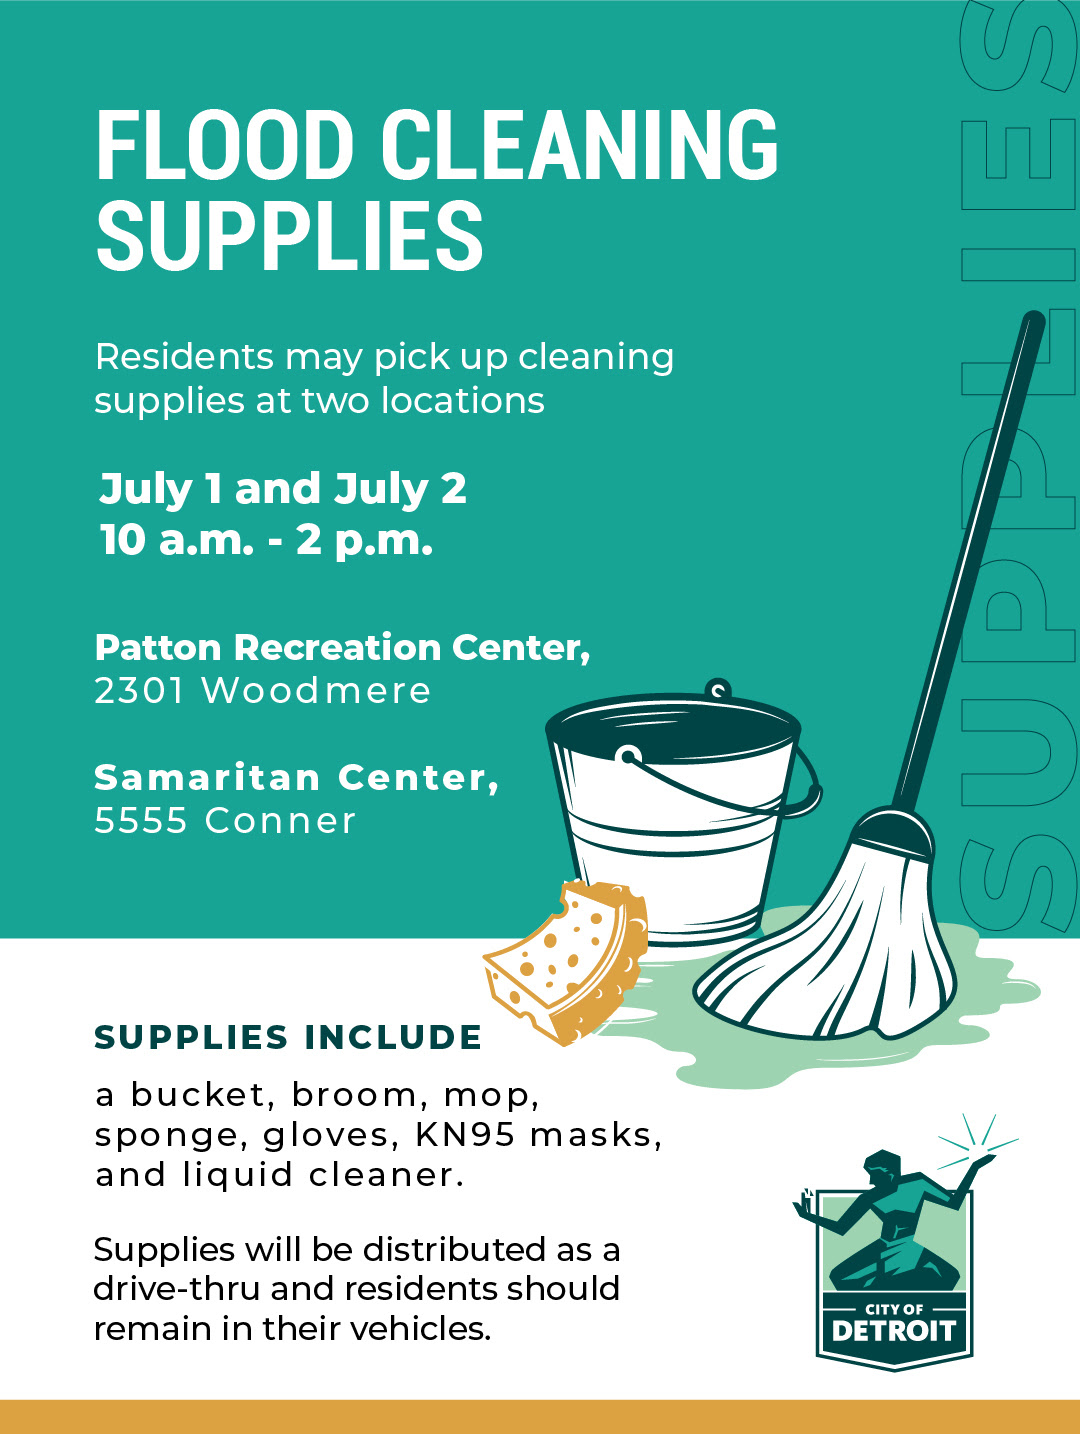 Flood Cleanup Supplies for Detroit Residents